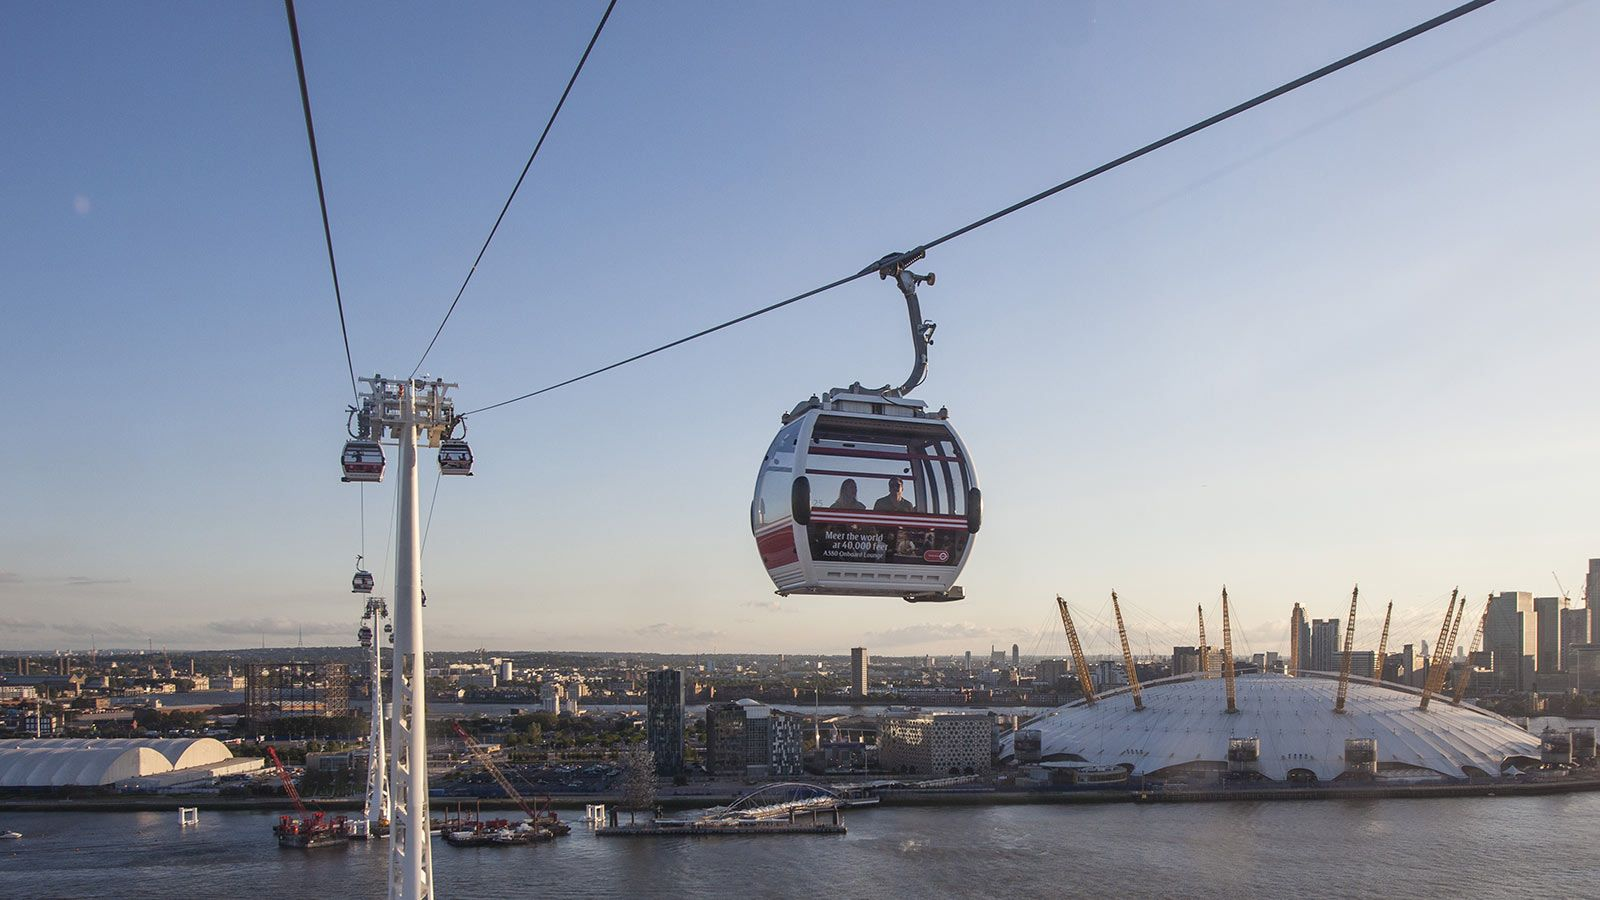 Emirates Air Line Cable Car - Mace Group